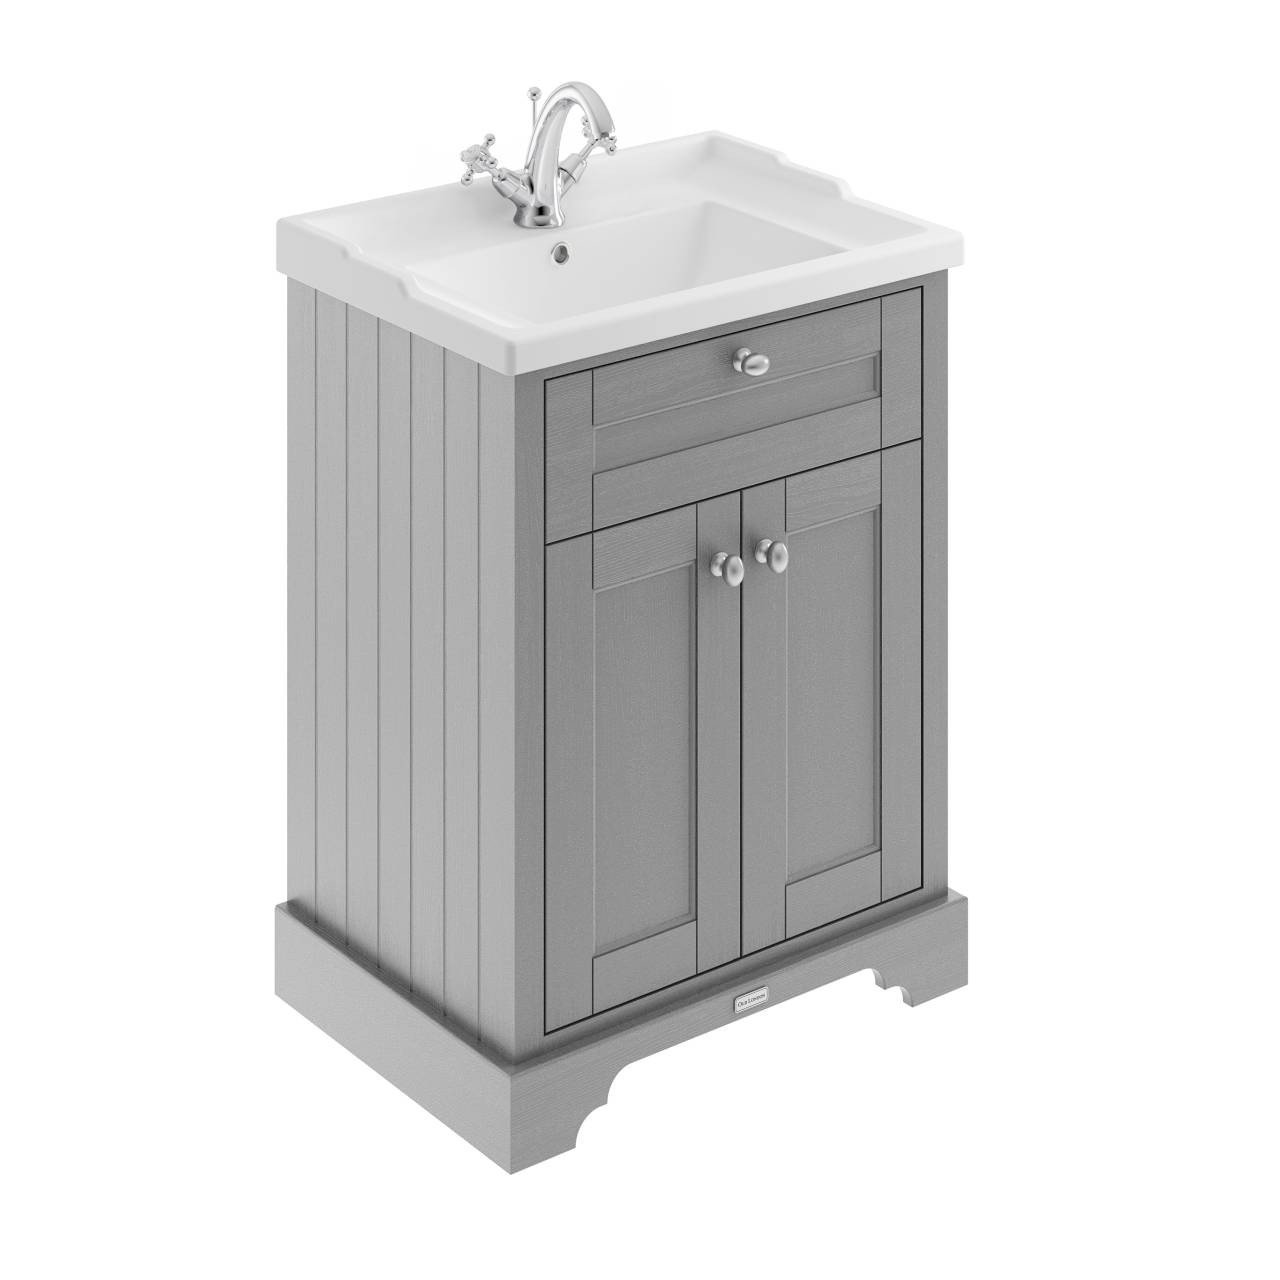 Old London Storm Grey 600mm 2 Door Vanity Unit and Basin with 1 Tap Hole - LOF203